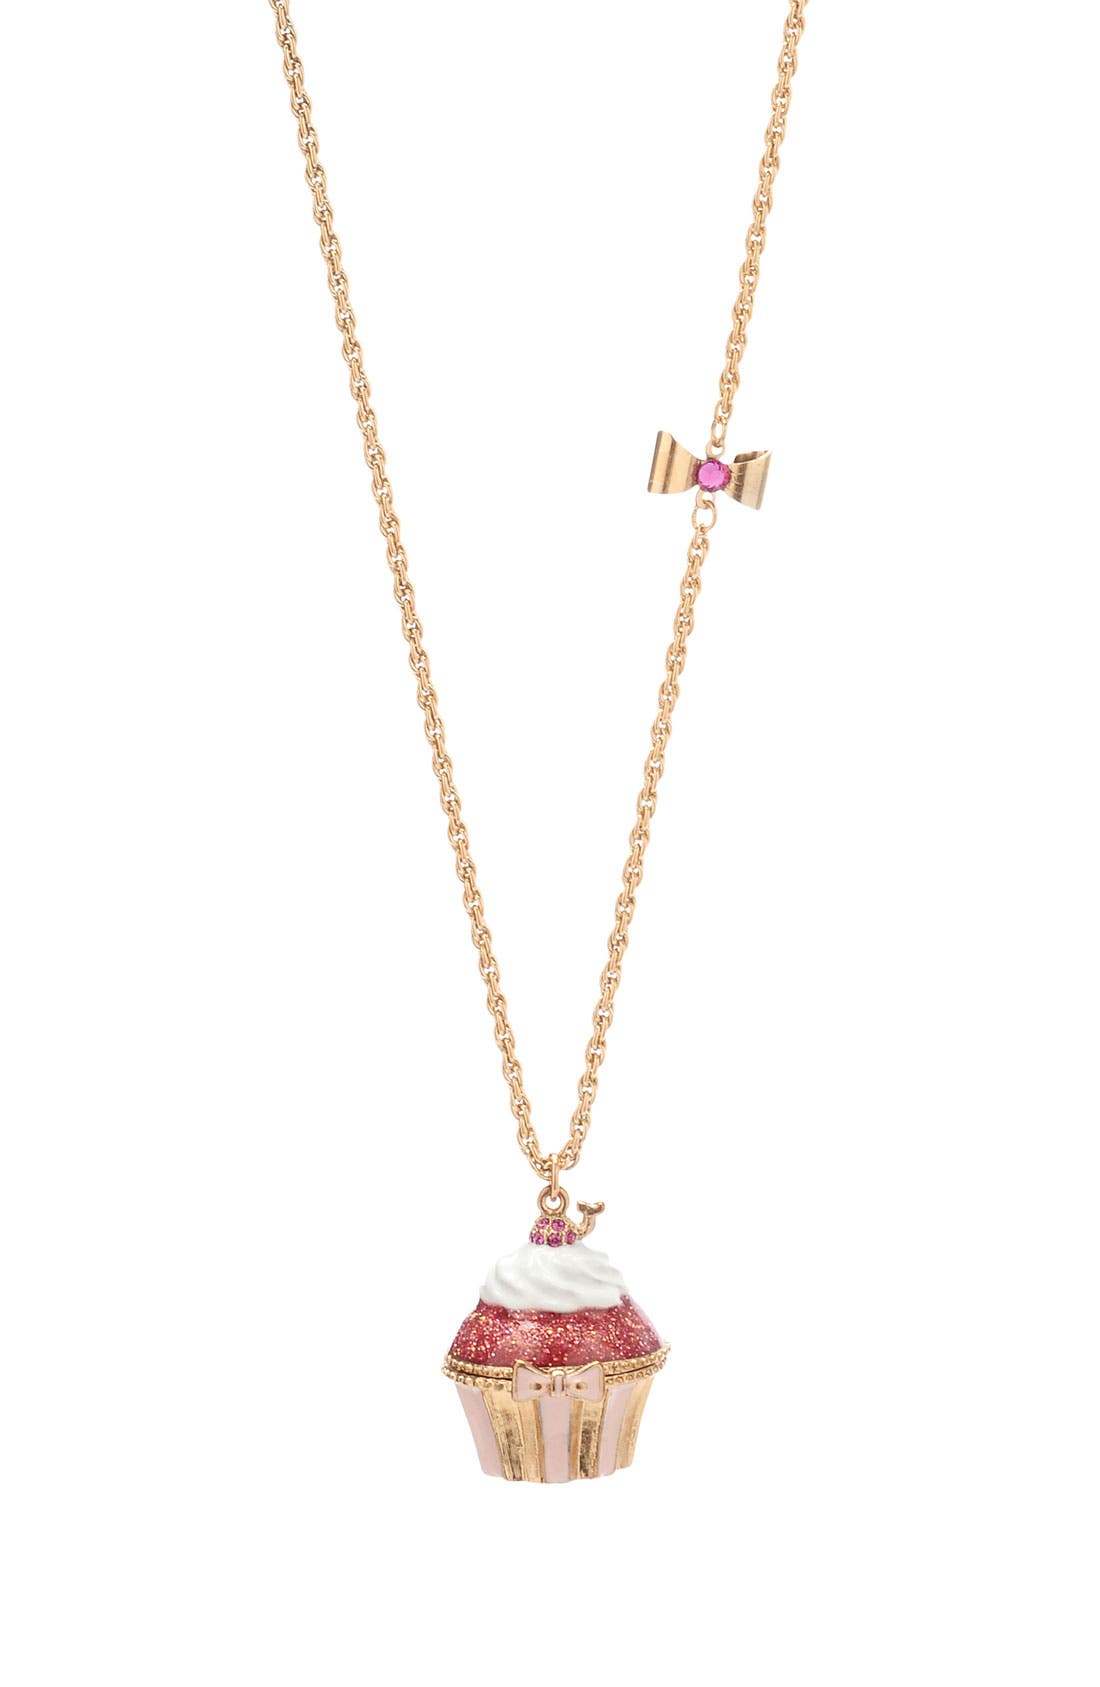 Main Image - Betsey Johnson 'Tzar' Cupcake Pendant Long Necklace